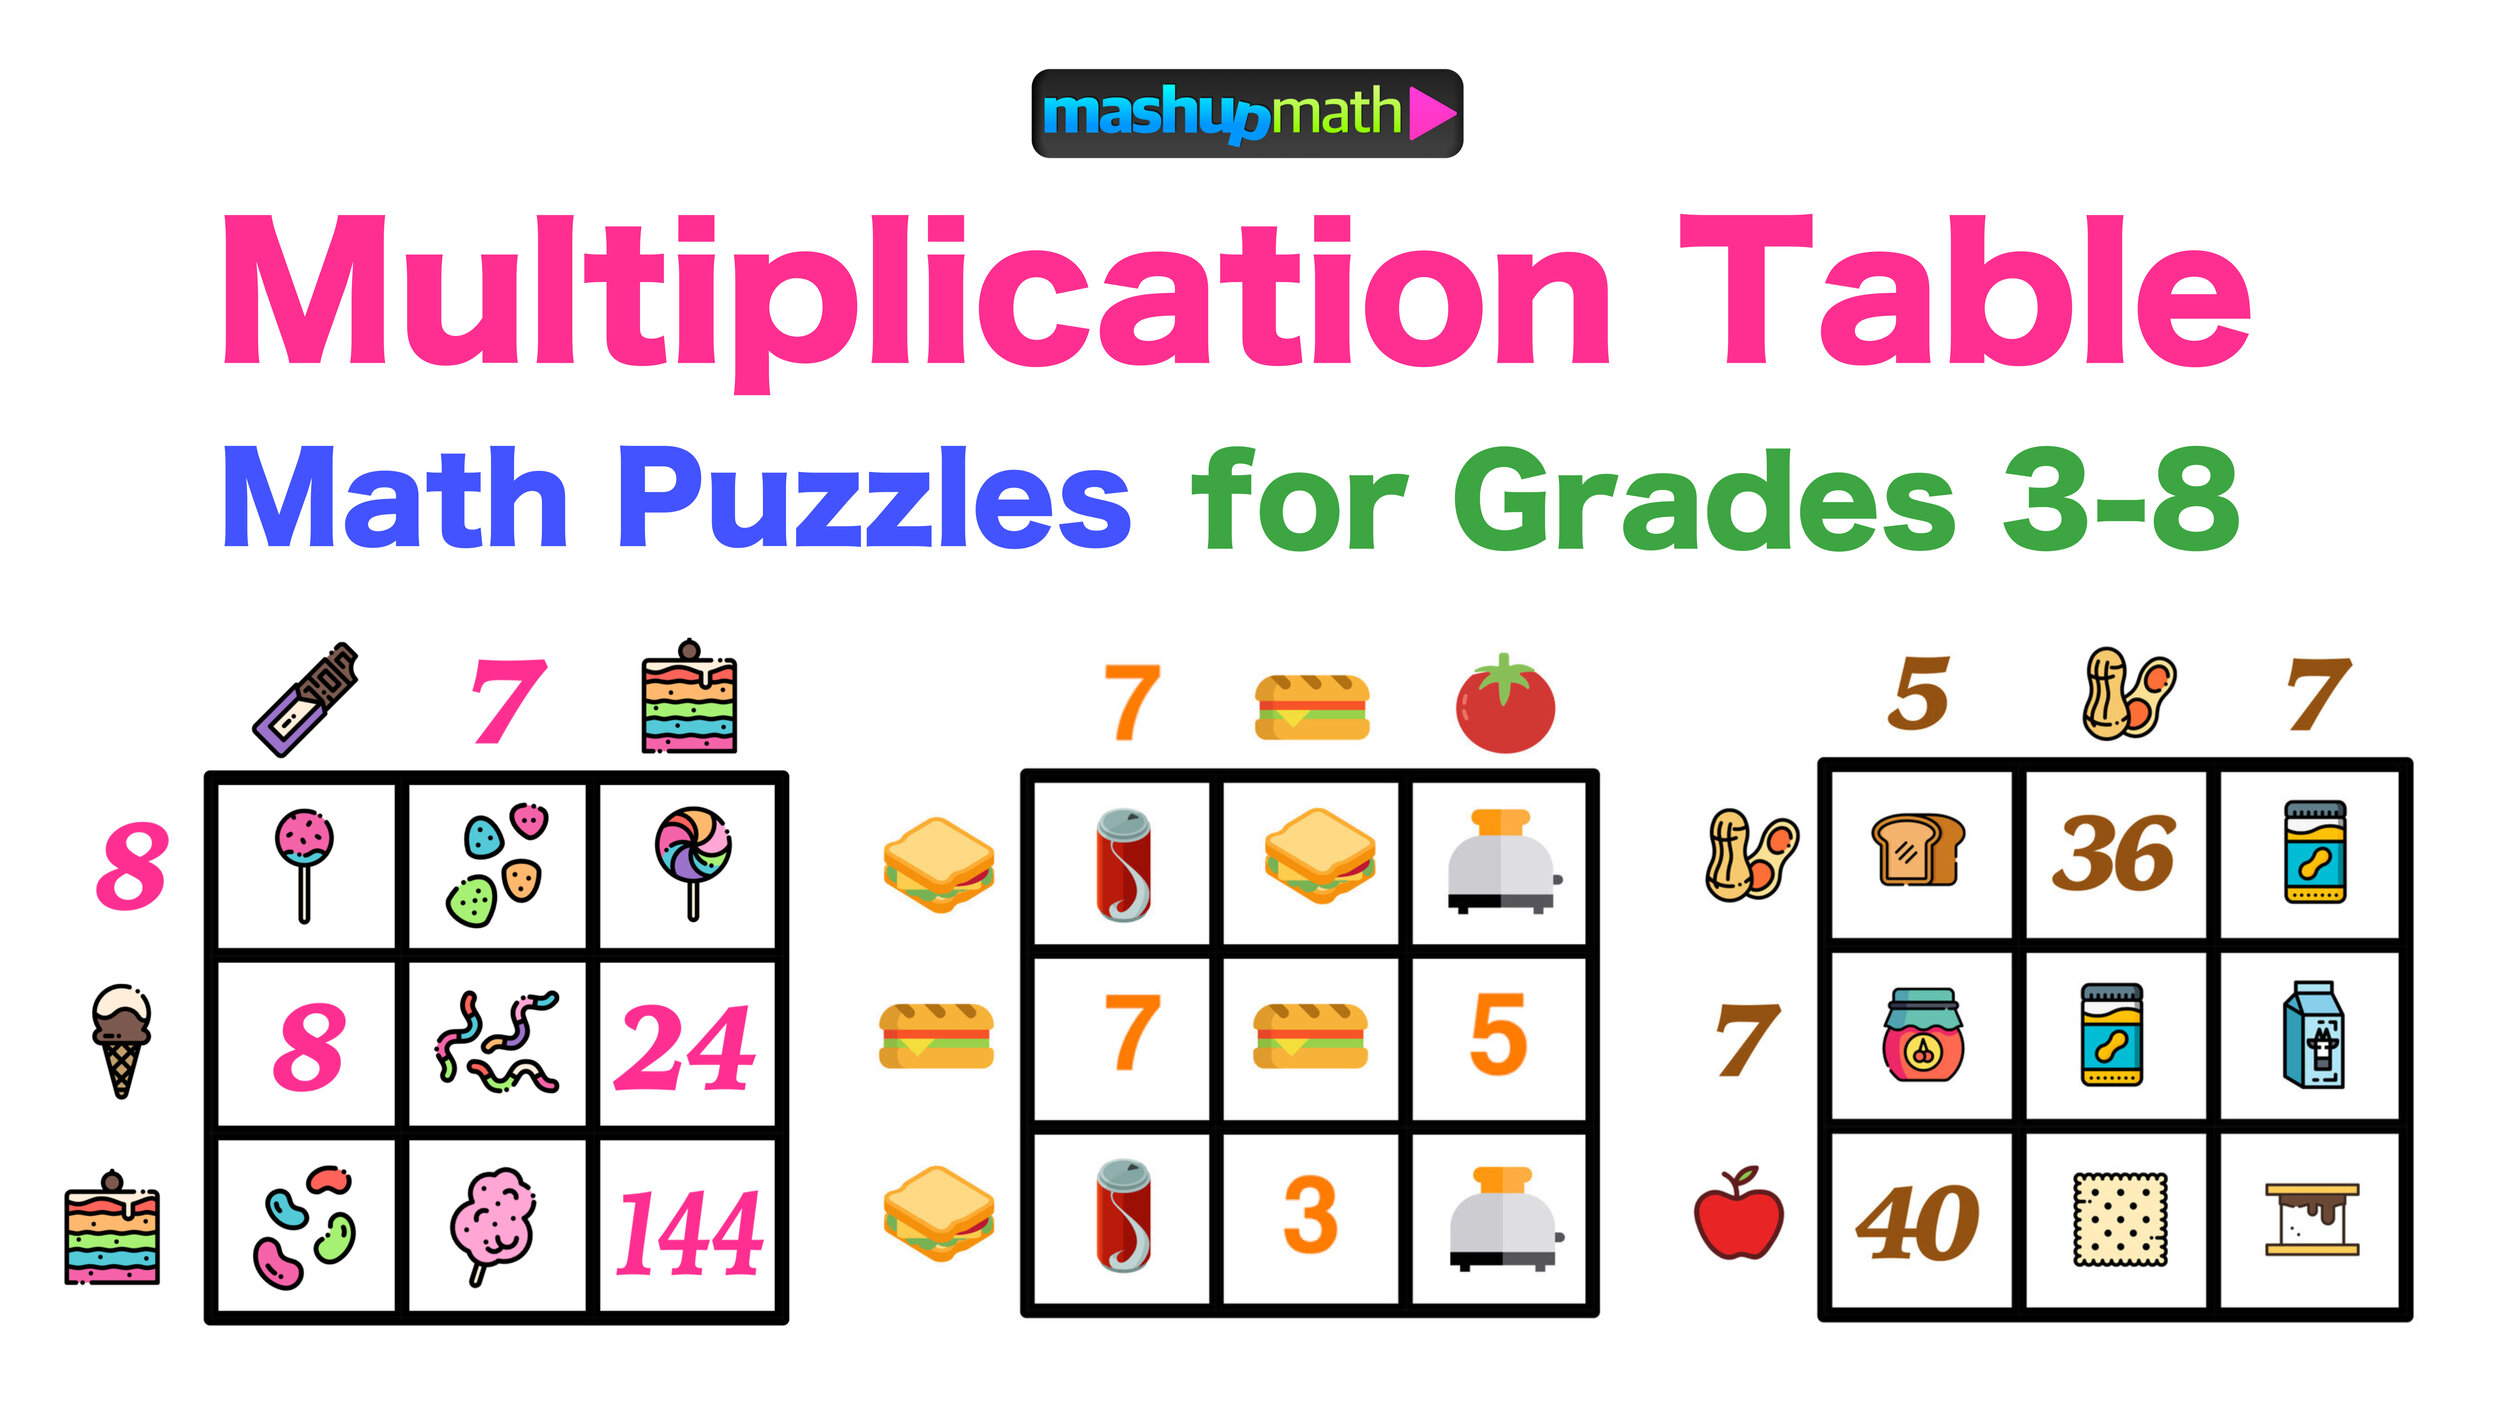 Multiplication Table Worksheets Free Printable Math Puzzles